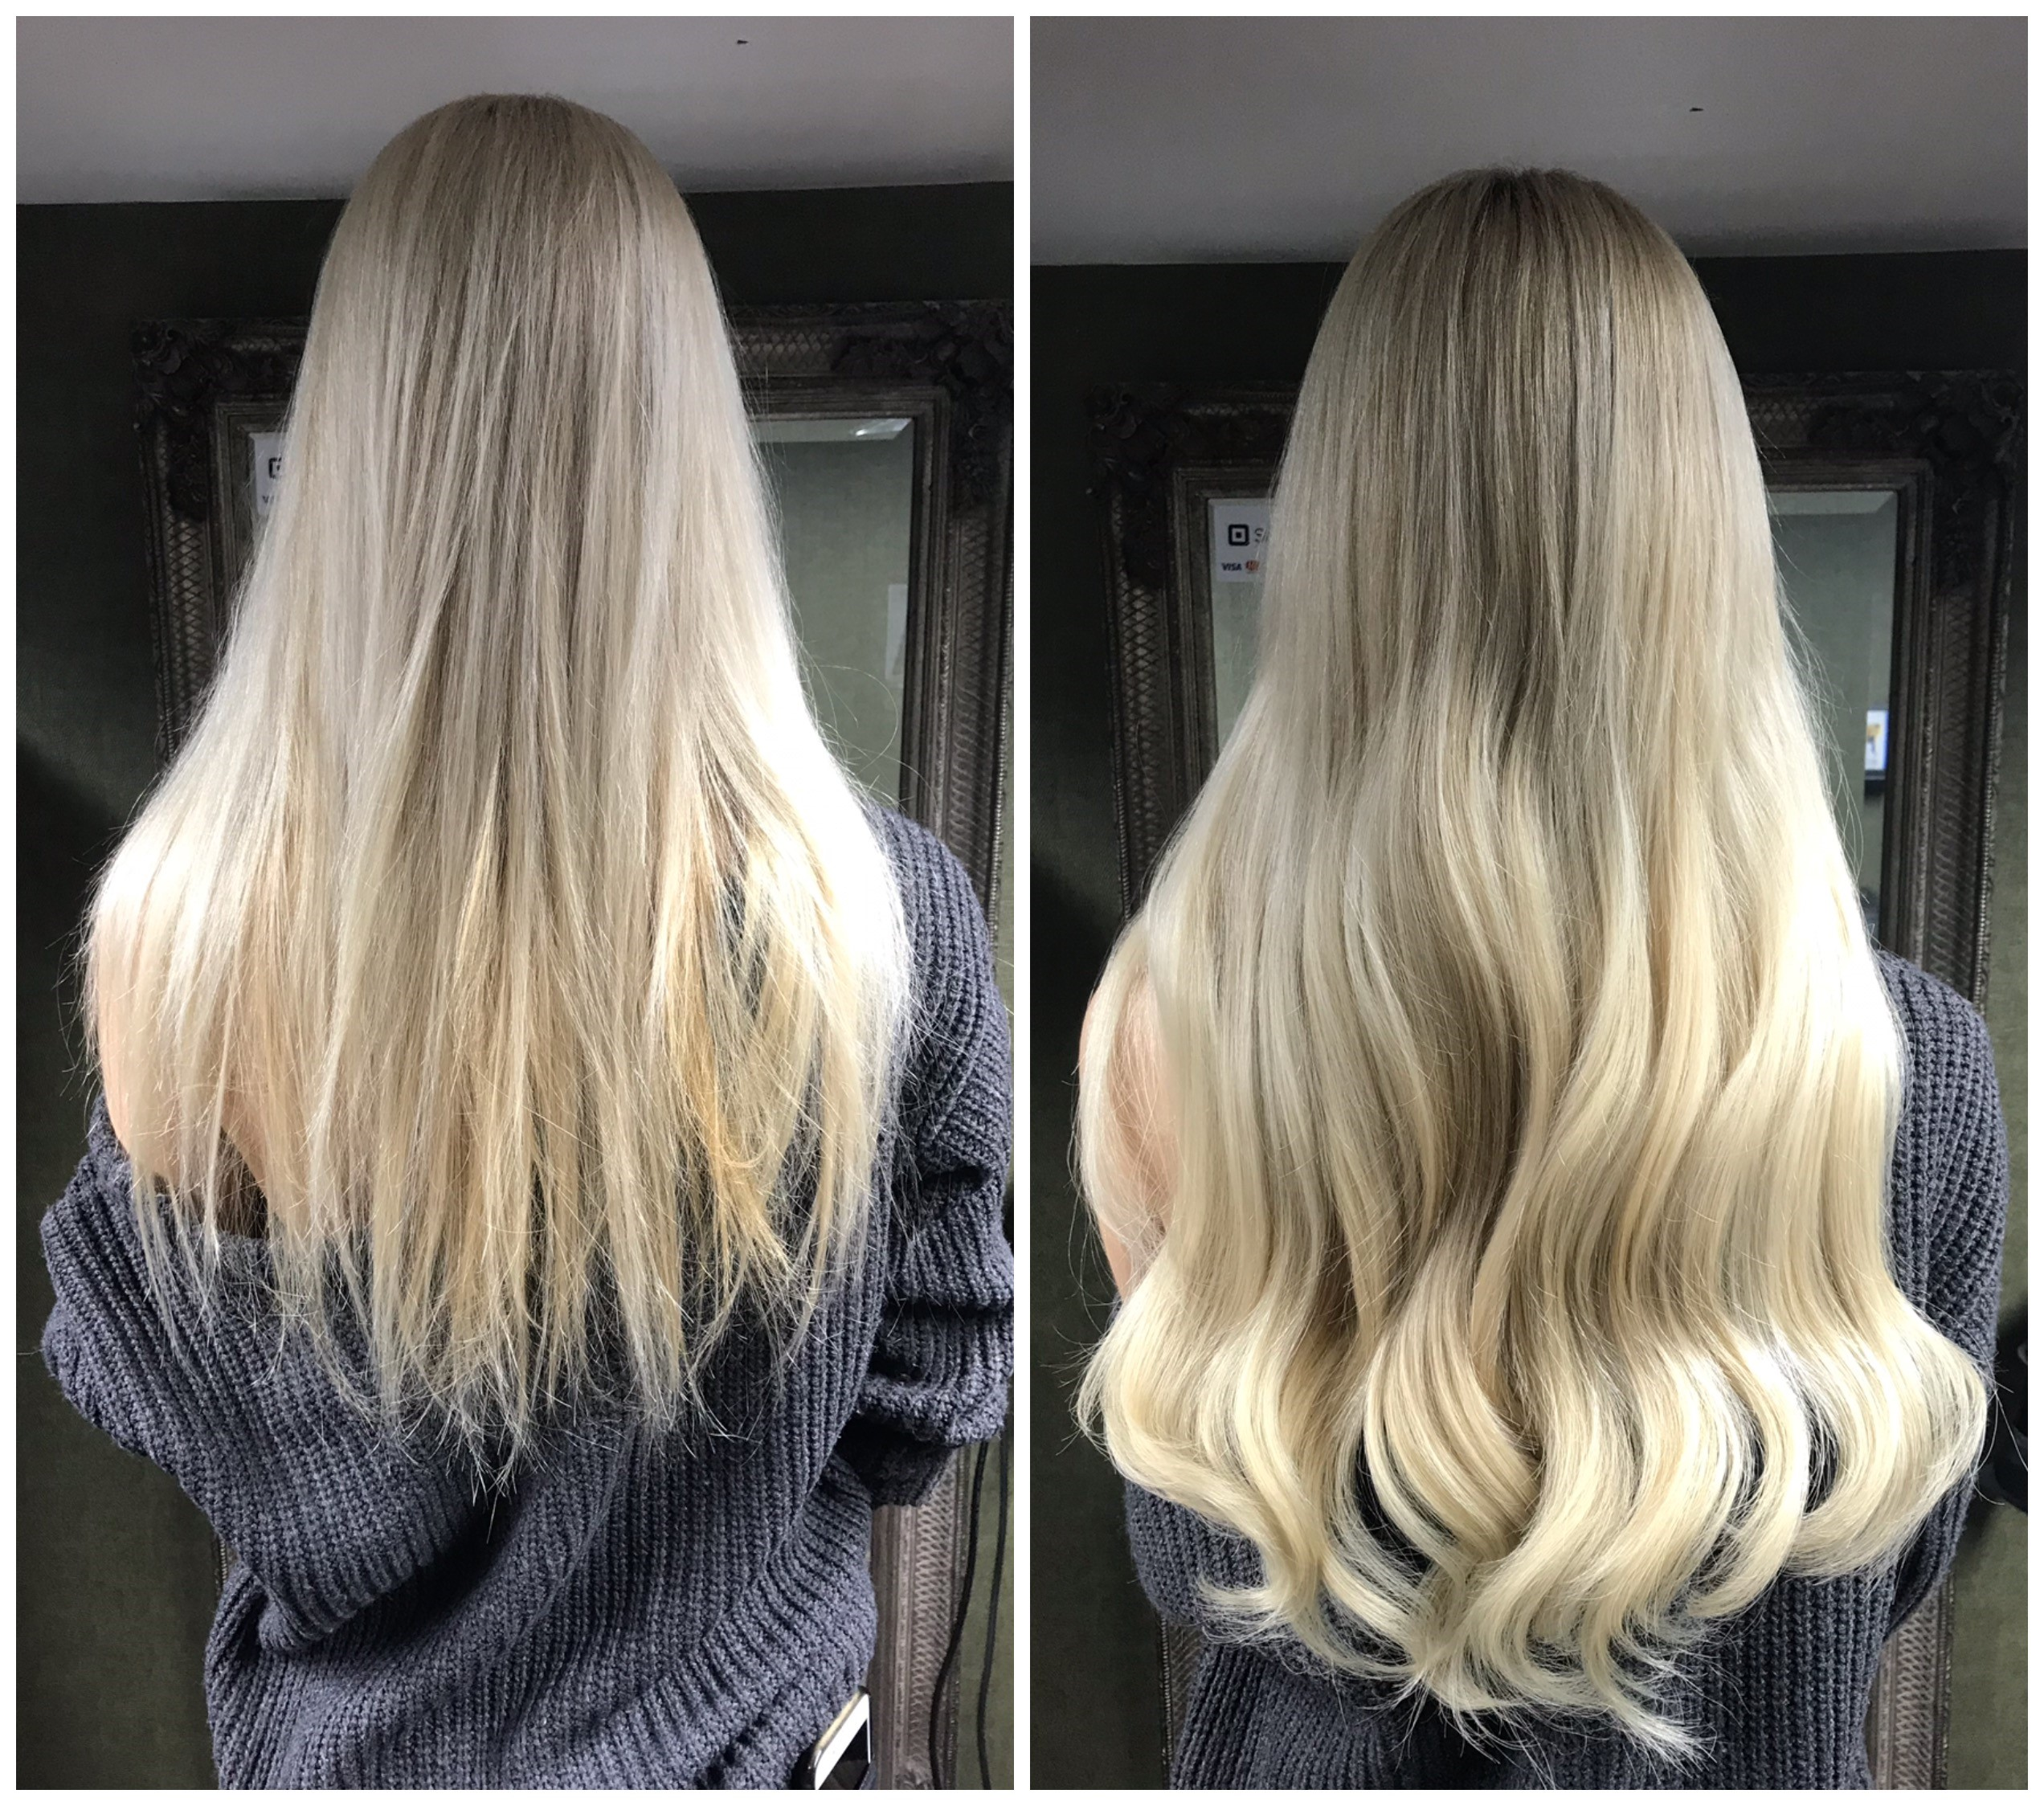 Louise Bailey Tape Hair Extensions7 Hair Extensions London